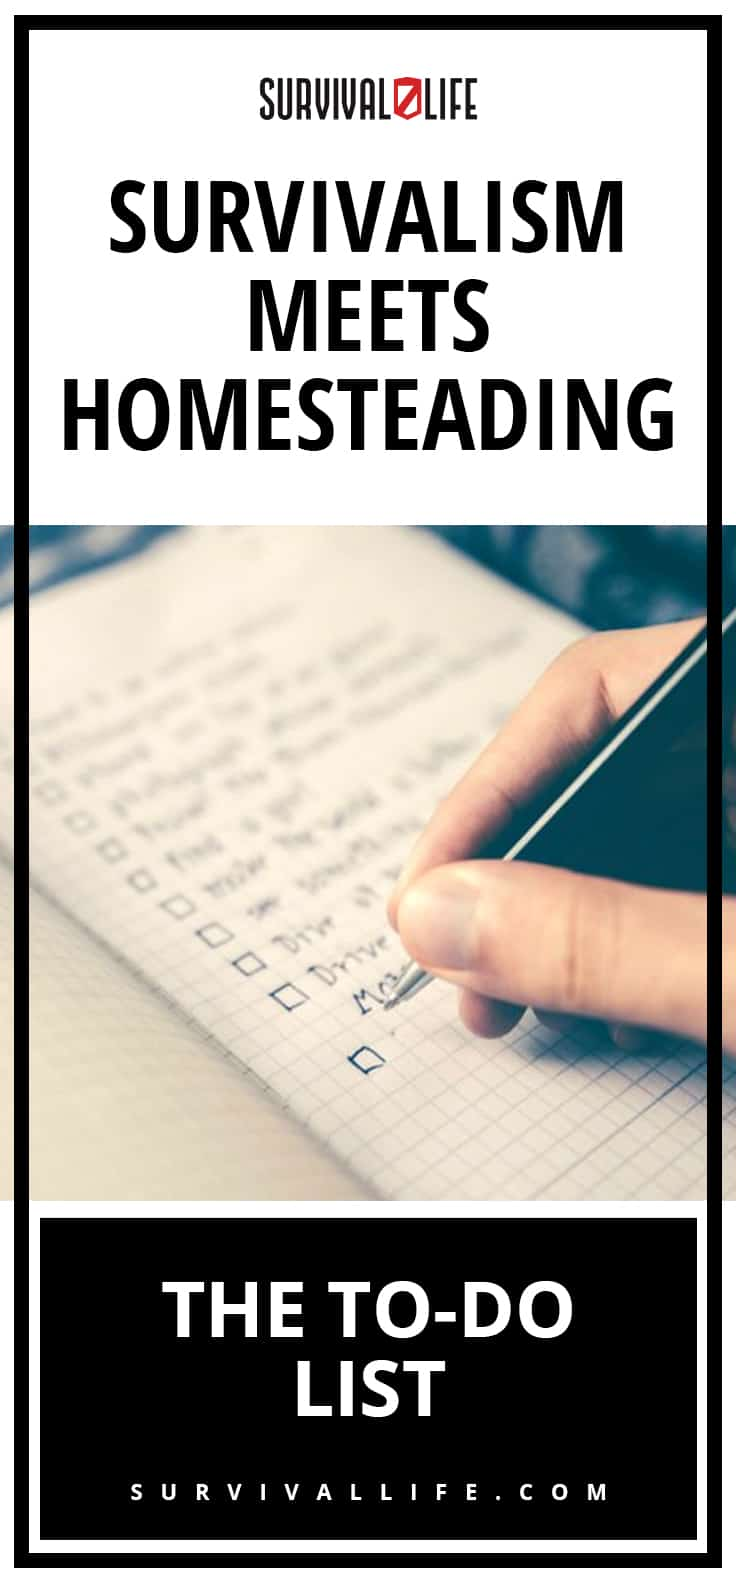 Survivalism Meets Homesteading: The To-Do List